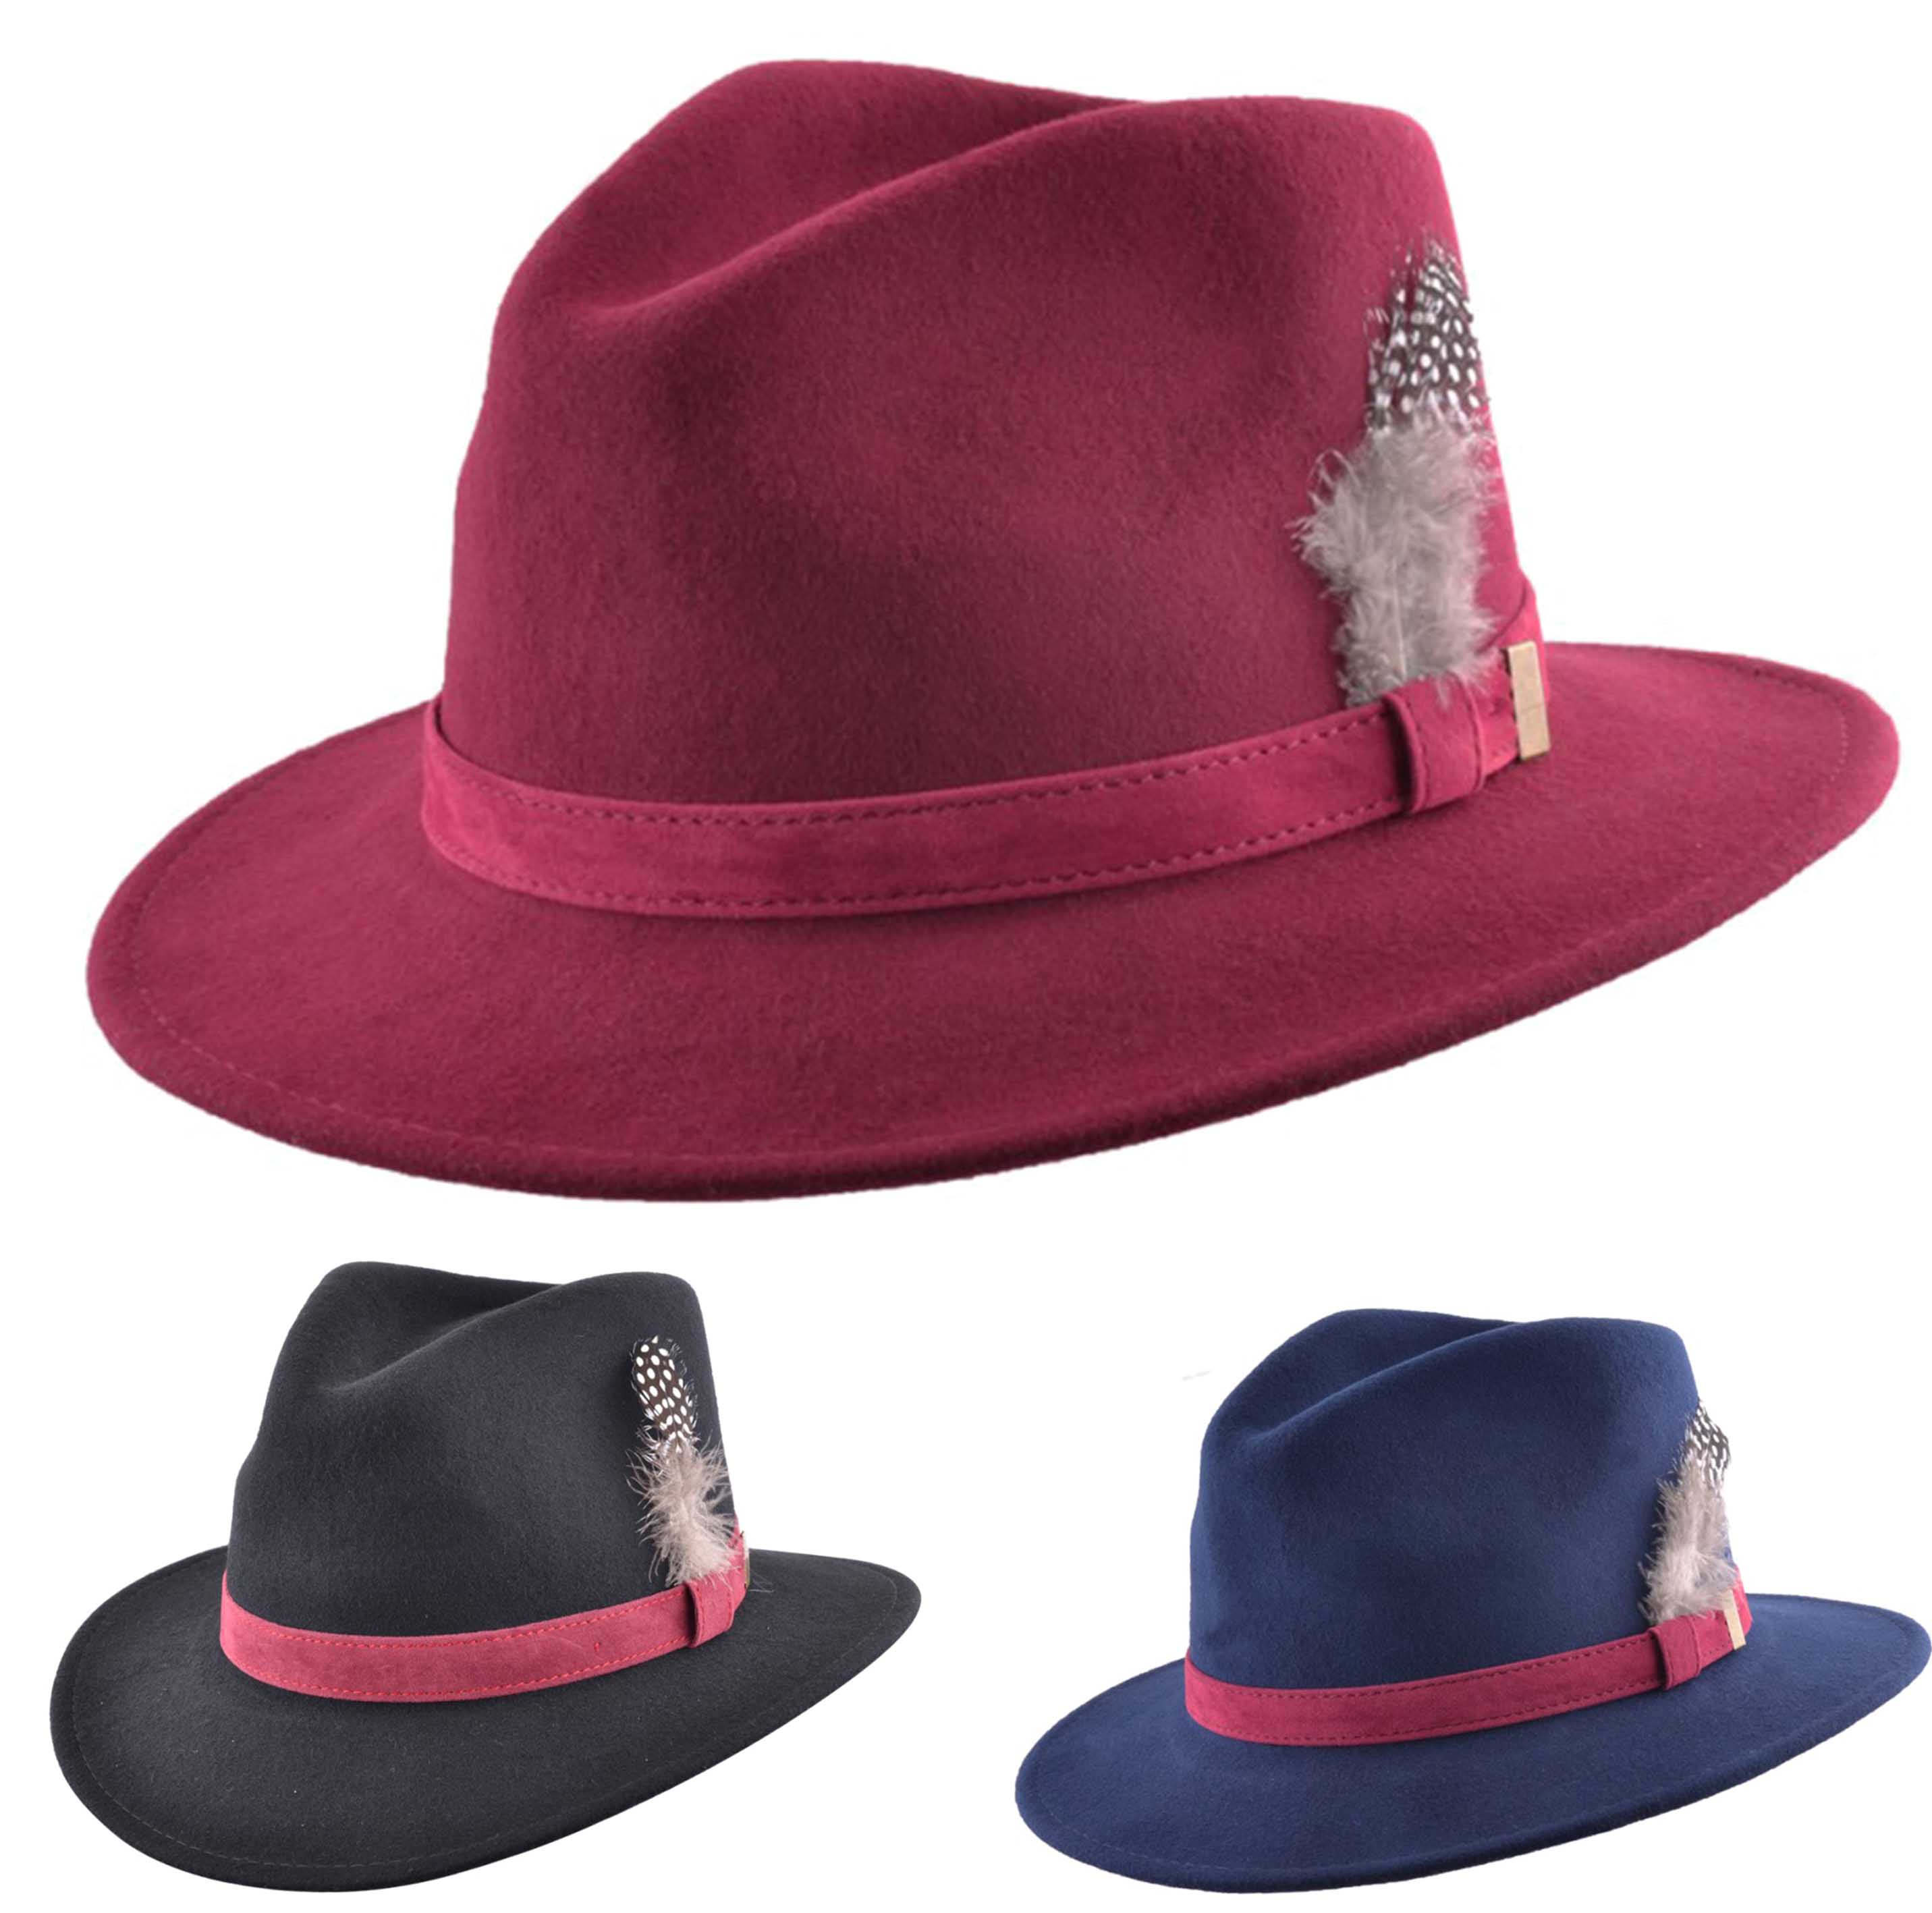 c6d18ea678 Details about Mens Ladies 100% Wool Felt Crushable Fedora Trilby Hat  Feather Black Navy Wine